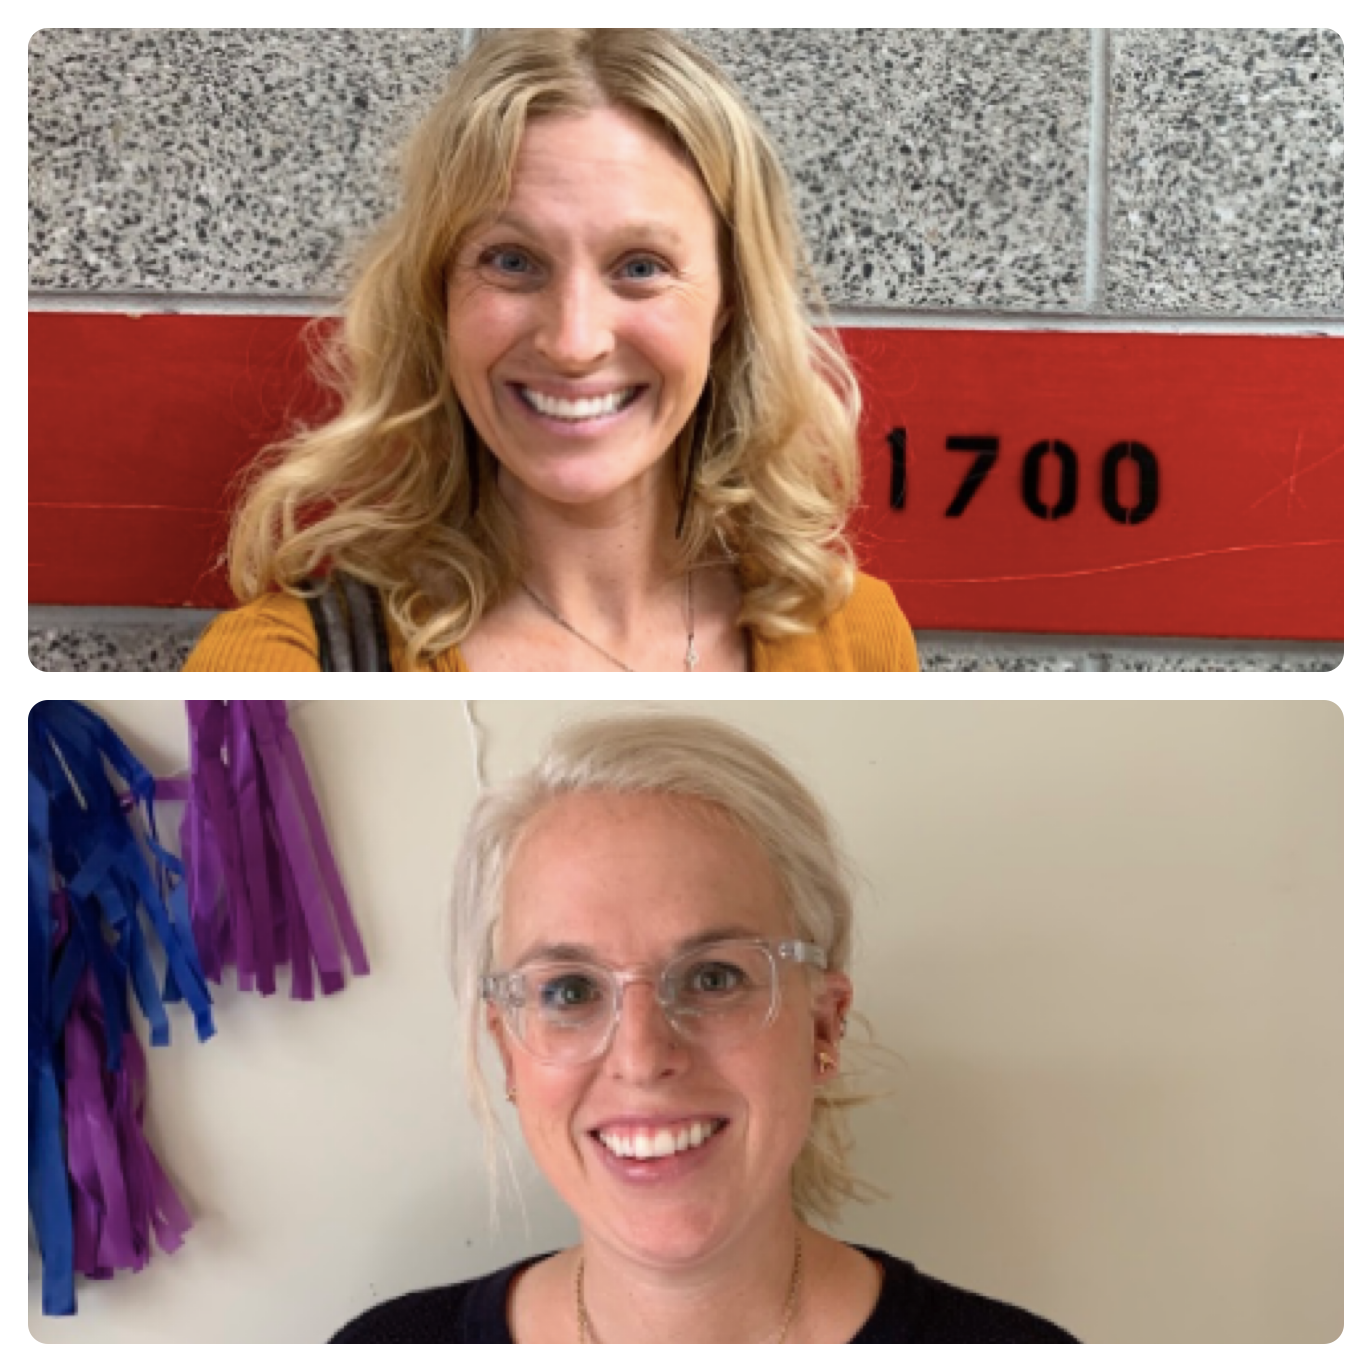 AHS English teachers Mailie LaPenna and Anna Beth Clark return to the AHS halls after maternity leave.